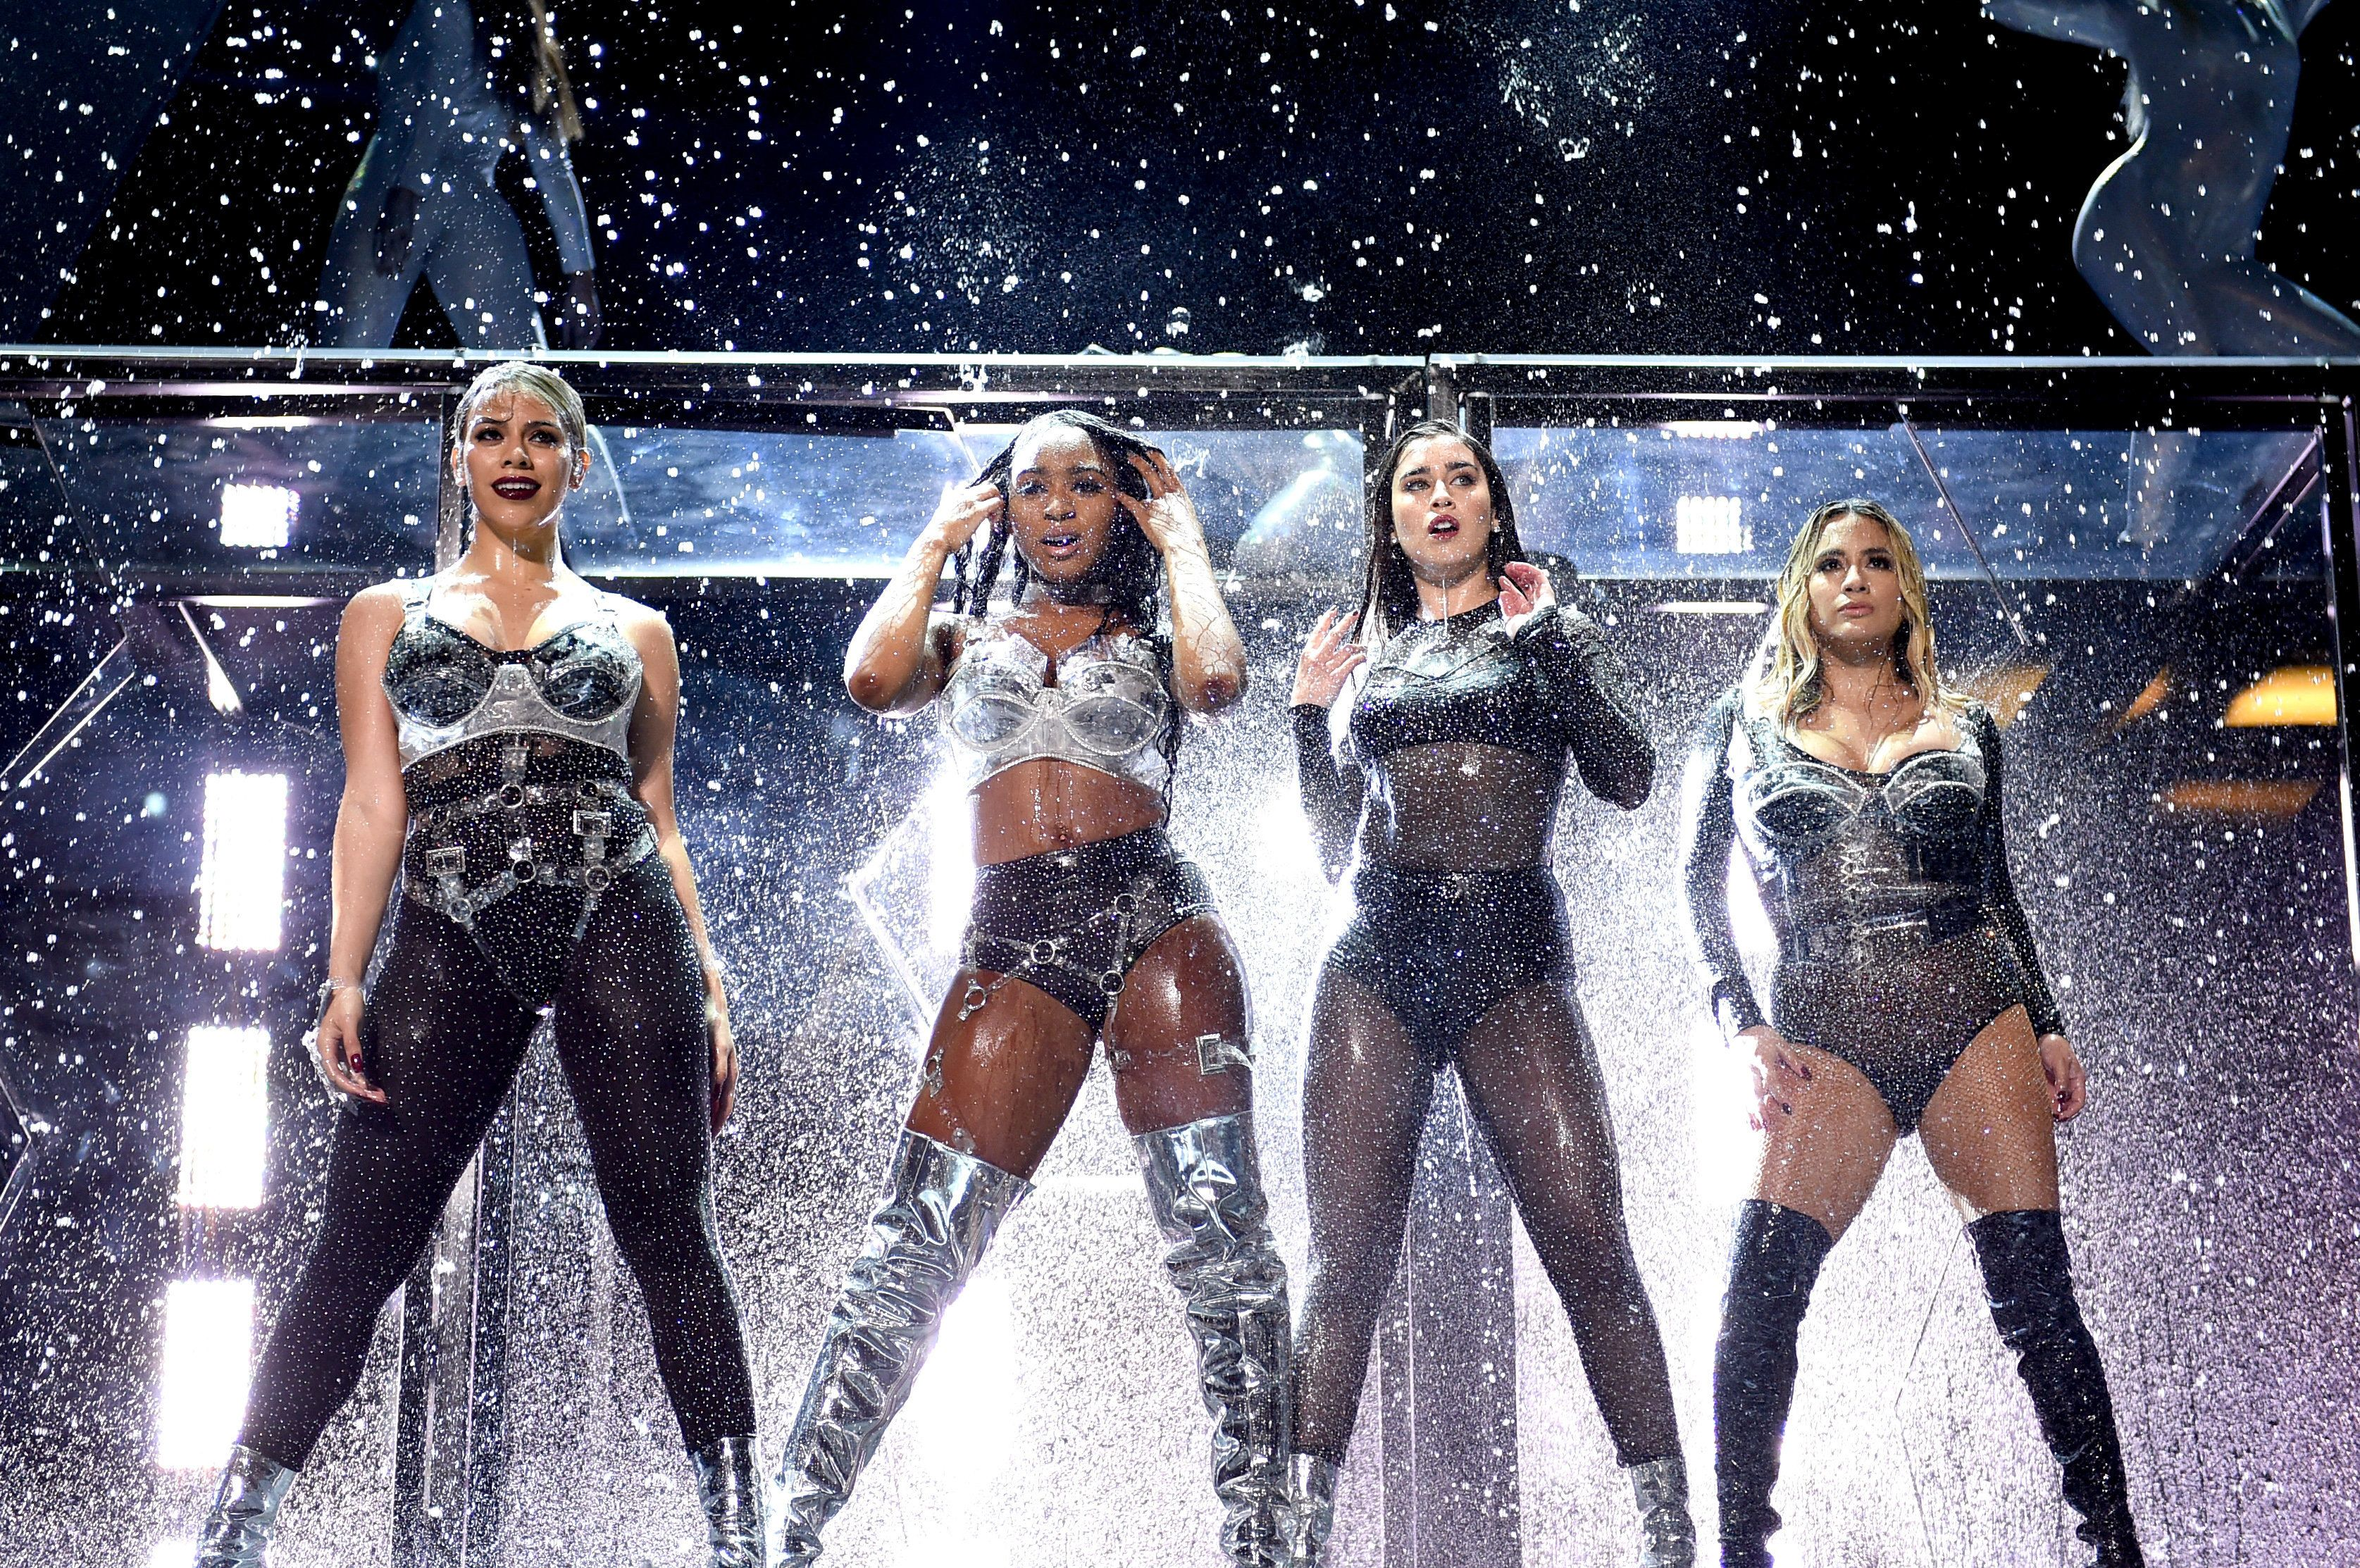 INGLEWOOD, CA - AUGUST 27:  (L-R) Dinah Jane, Normani Kordei, Lauren Jauregui, and Ally Brooke of Fifth Harmony perform onstage during the 2017 MTV Video Music Awards at The Forum on August 27, 2017 in Inglewood, California.  (Photo by John Shearer/Getty Images for MTV)